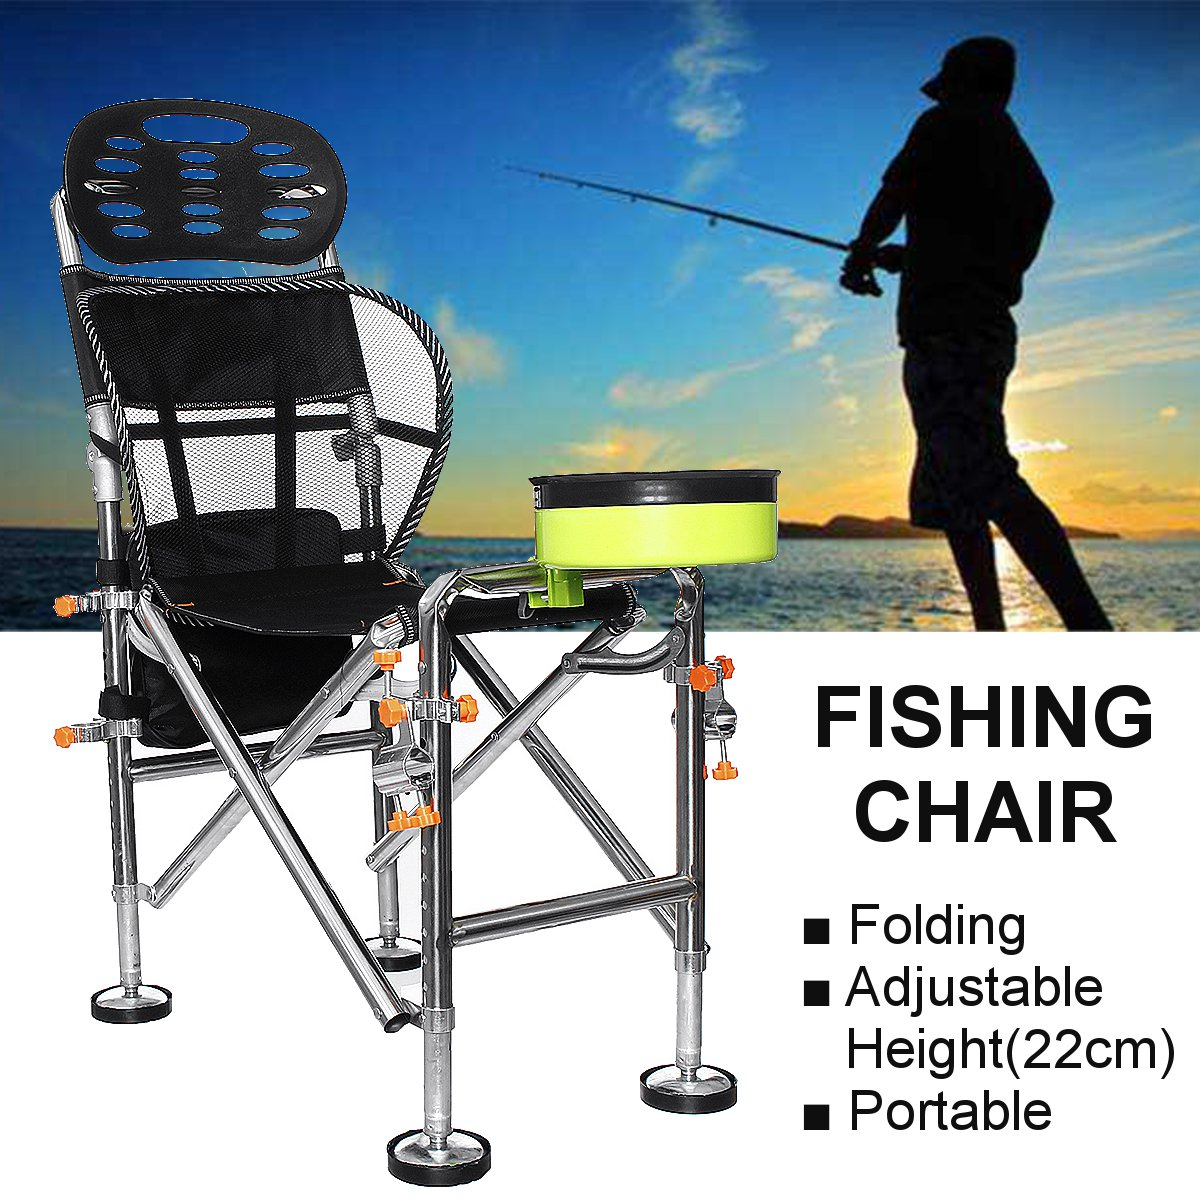 Marvelous Outdoor Portable Folding Chair Stainless Steel Fishing Seat Stool Adjustable Liftable 22Cm Camping Bbq Inzonedesignstudio Interior Chair Design Inzonedesignstudiocom